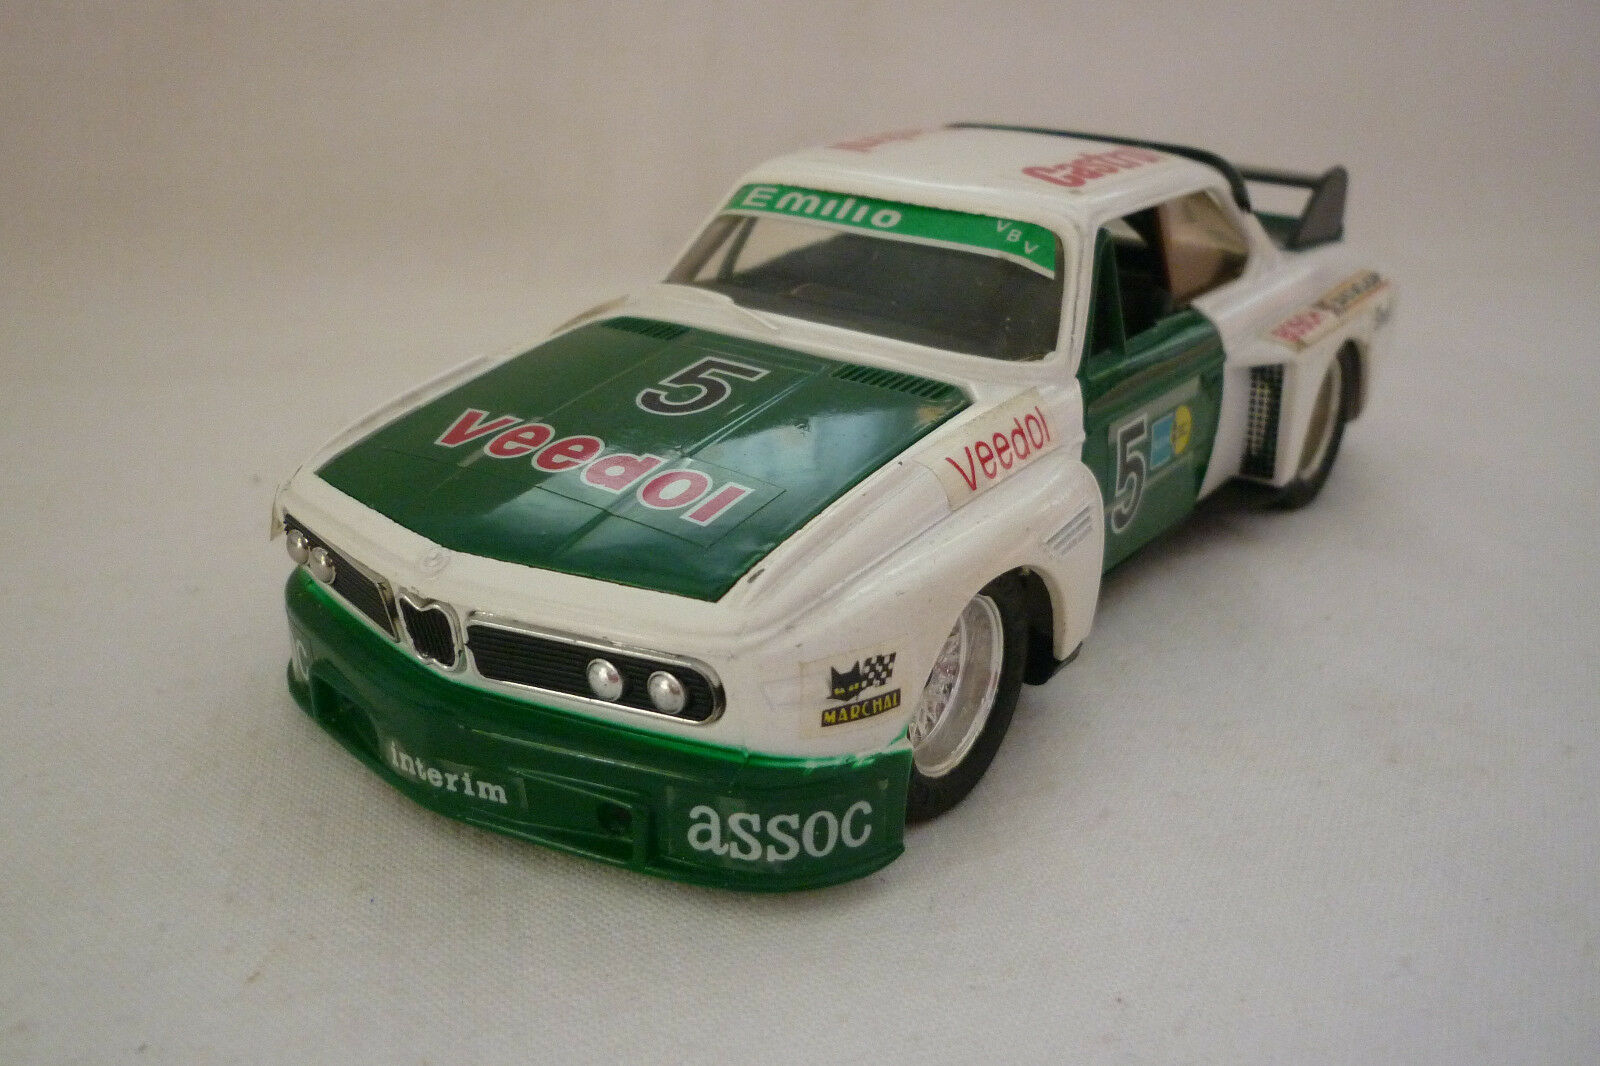 Eidai Grip - Metal Model - BMW 3.0 Csl - 1 24 1 28 - (5.DIV-46)